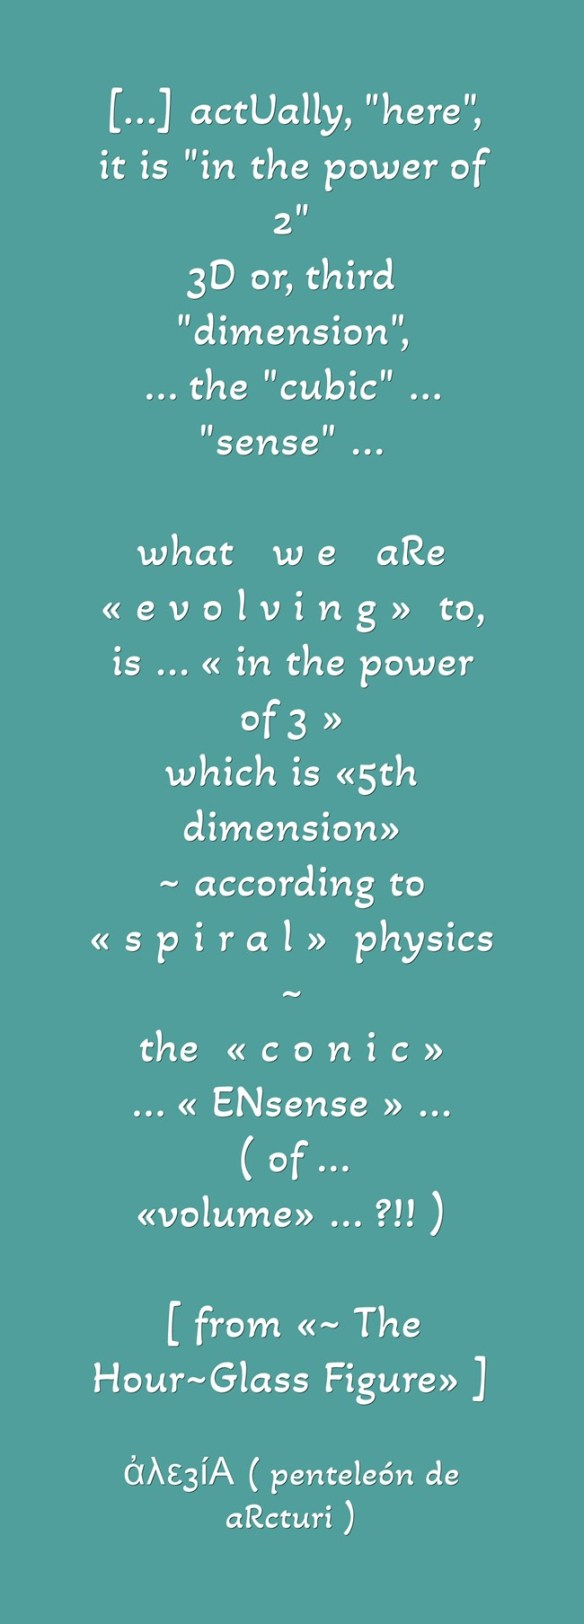 actUally ,,here,, it is in the power of 2 - 3D=cubic sense - evolving to POWER OF 3 - 5D -spiral- = conic ENsense = volume .QM